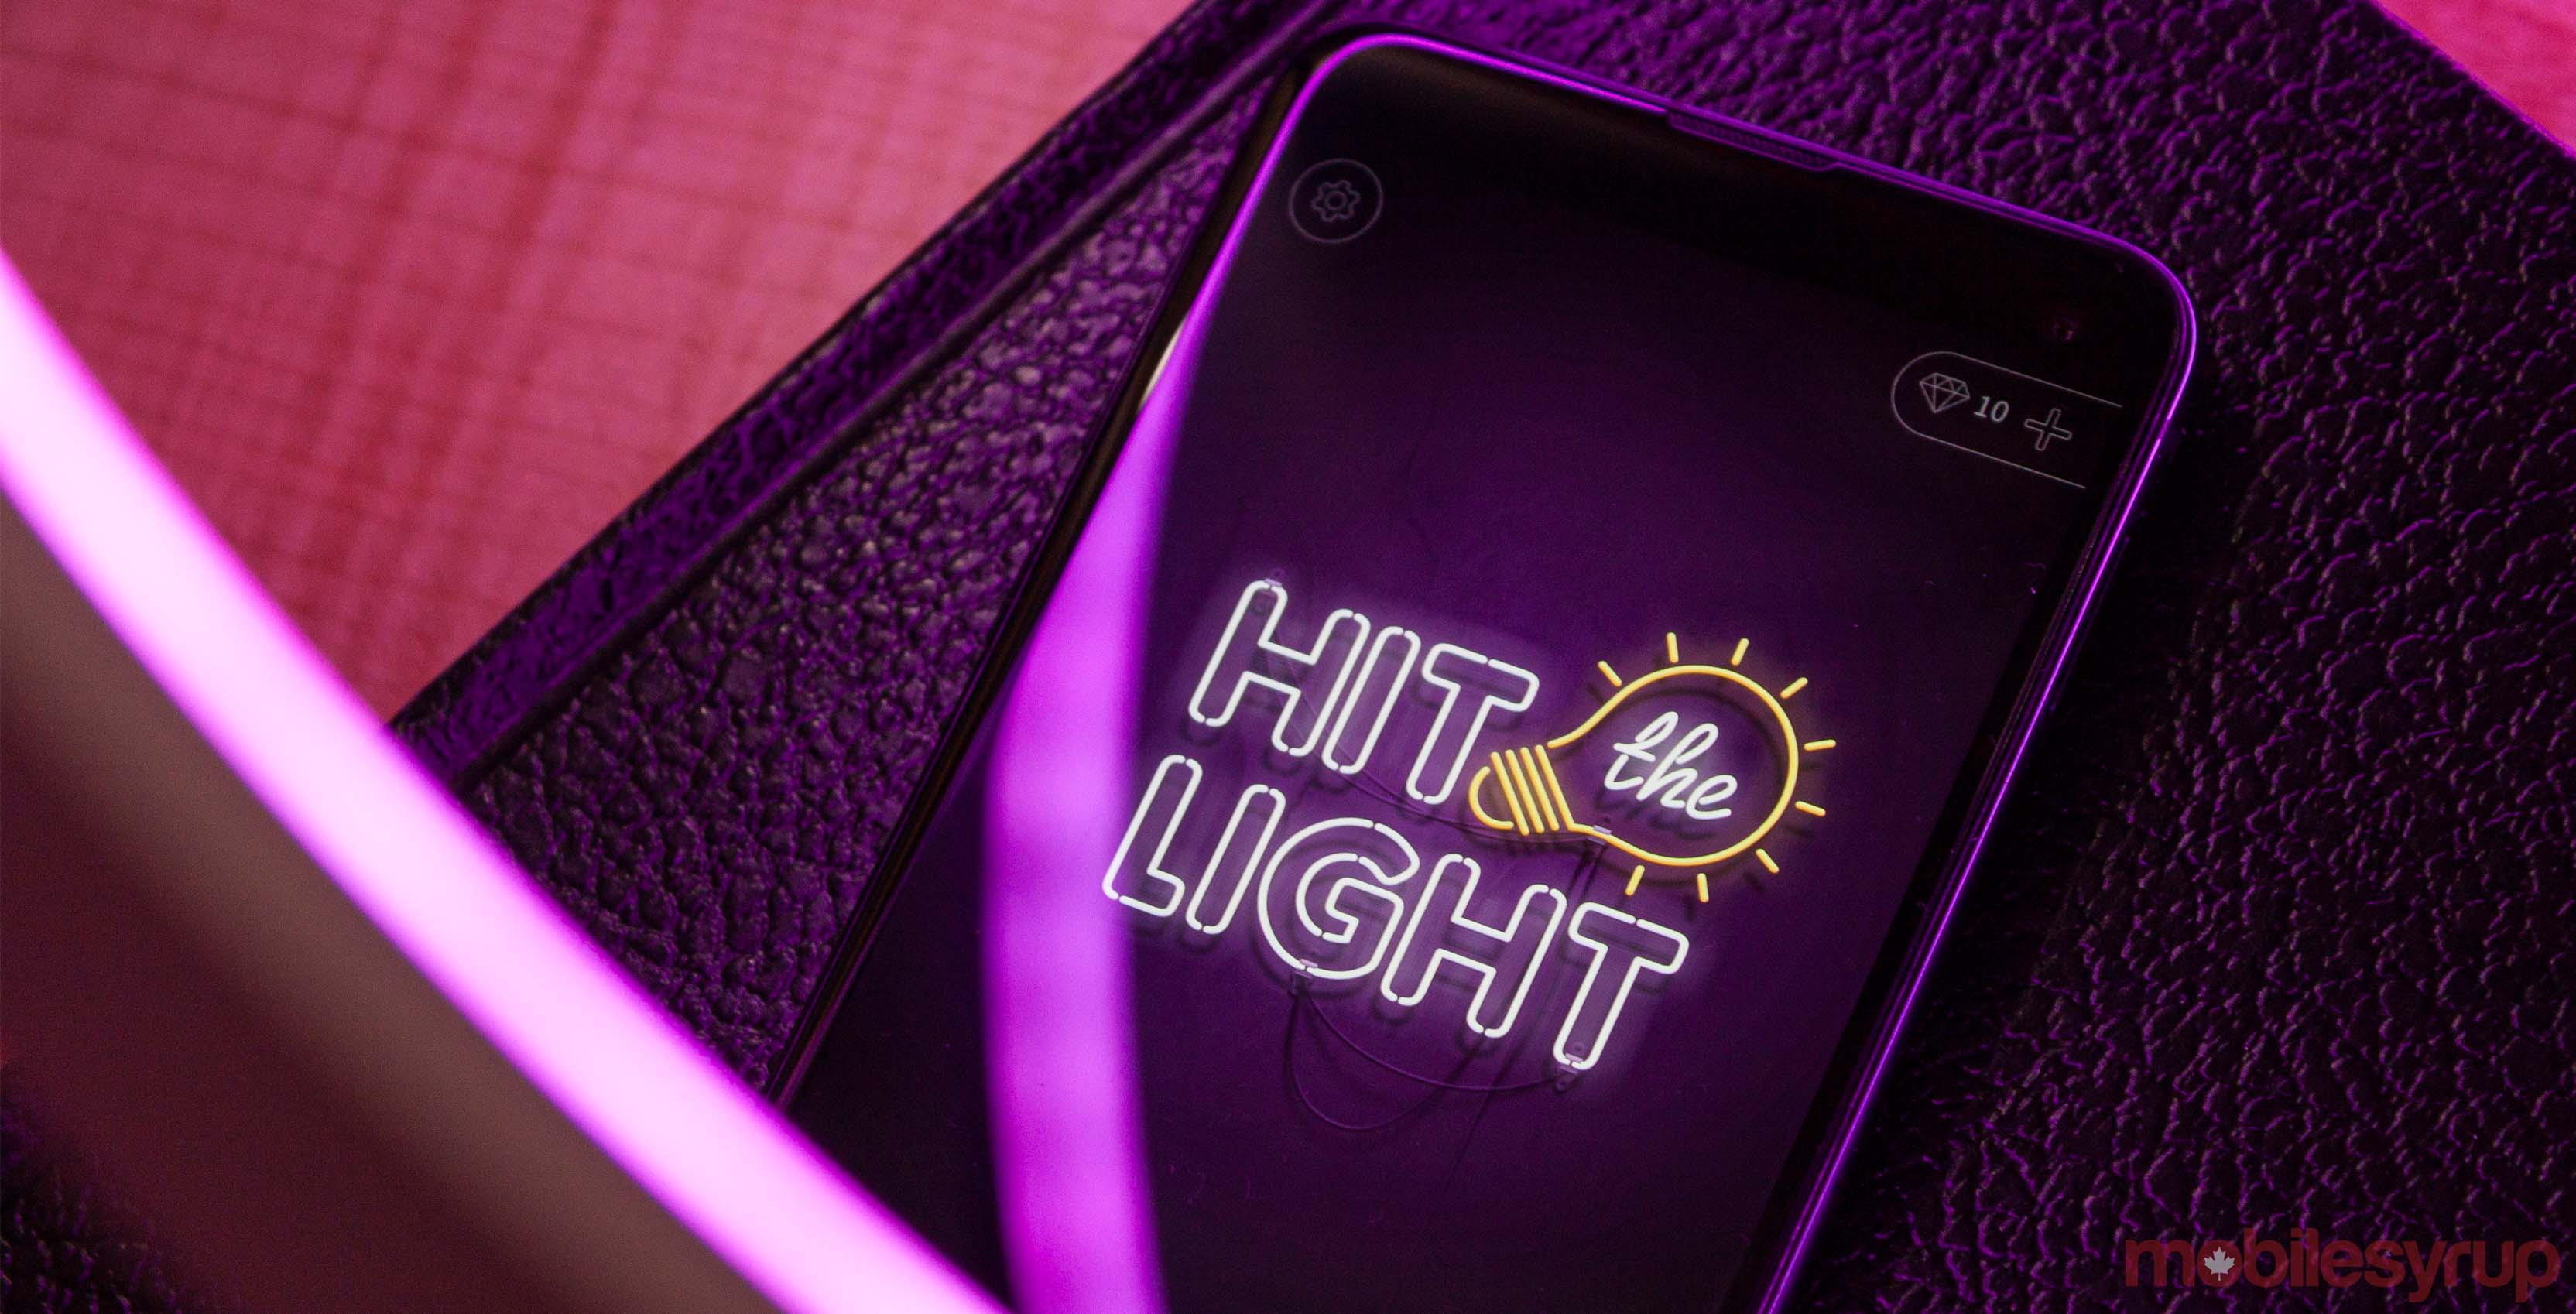 Smash light bulbs and enjoy tunes in mobile arcade game 'Hit the Light' [Game of the Week]